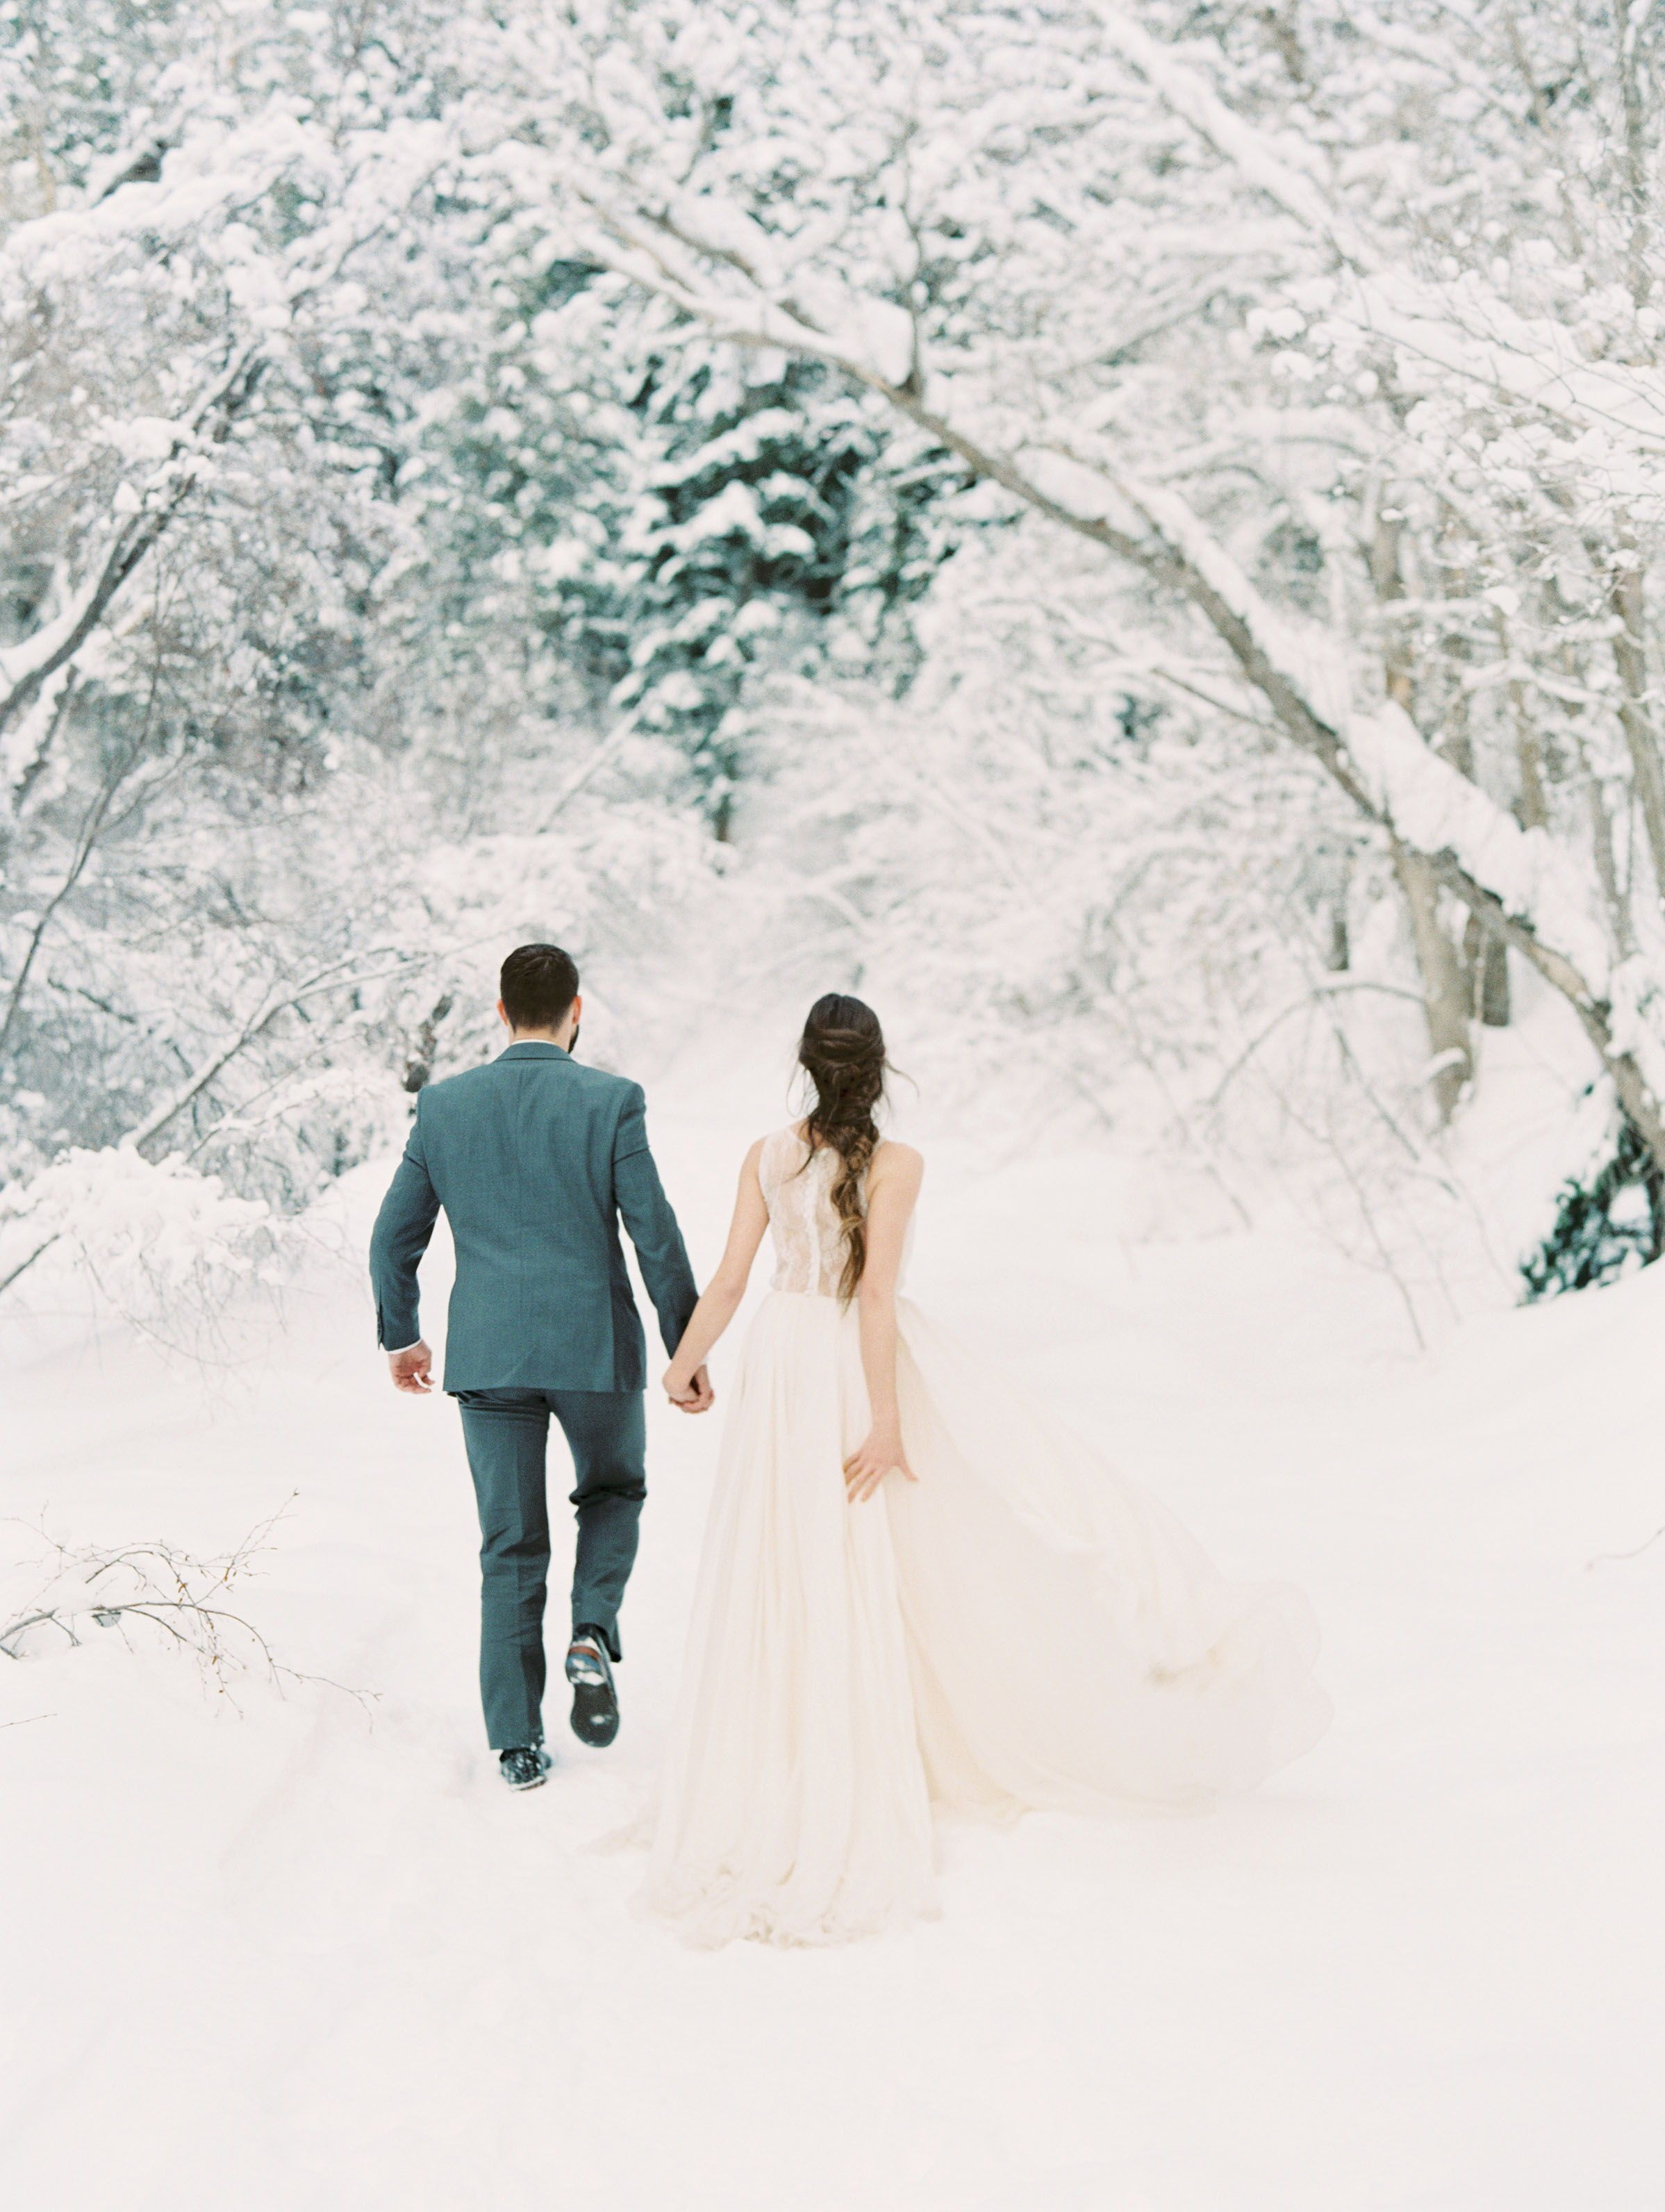 Winter Wedding Romantic Snow Trees Forest Beautiful Attire